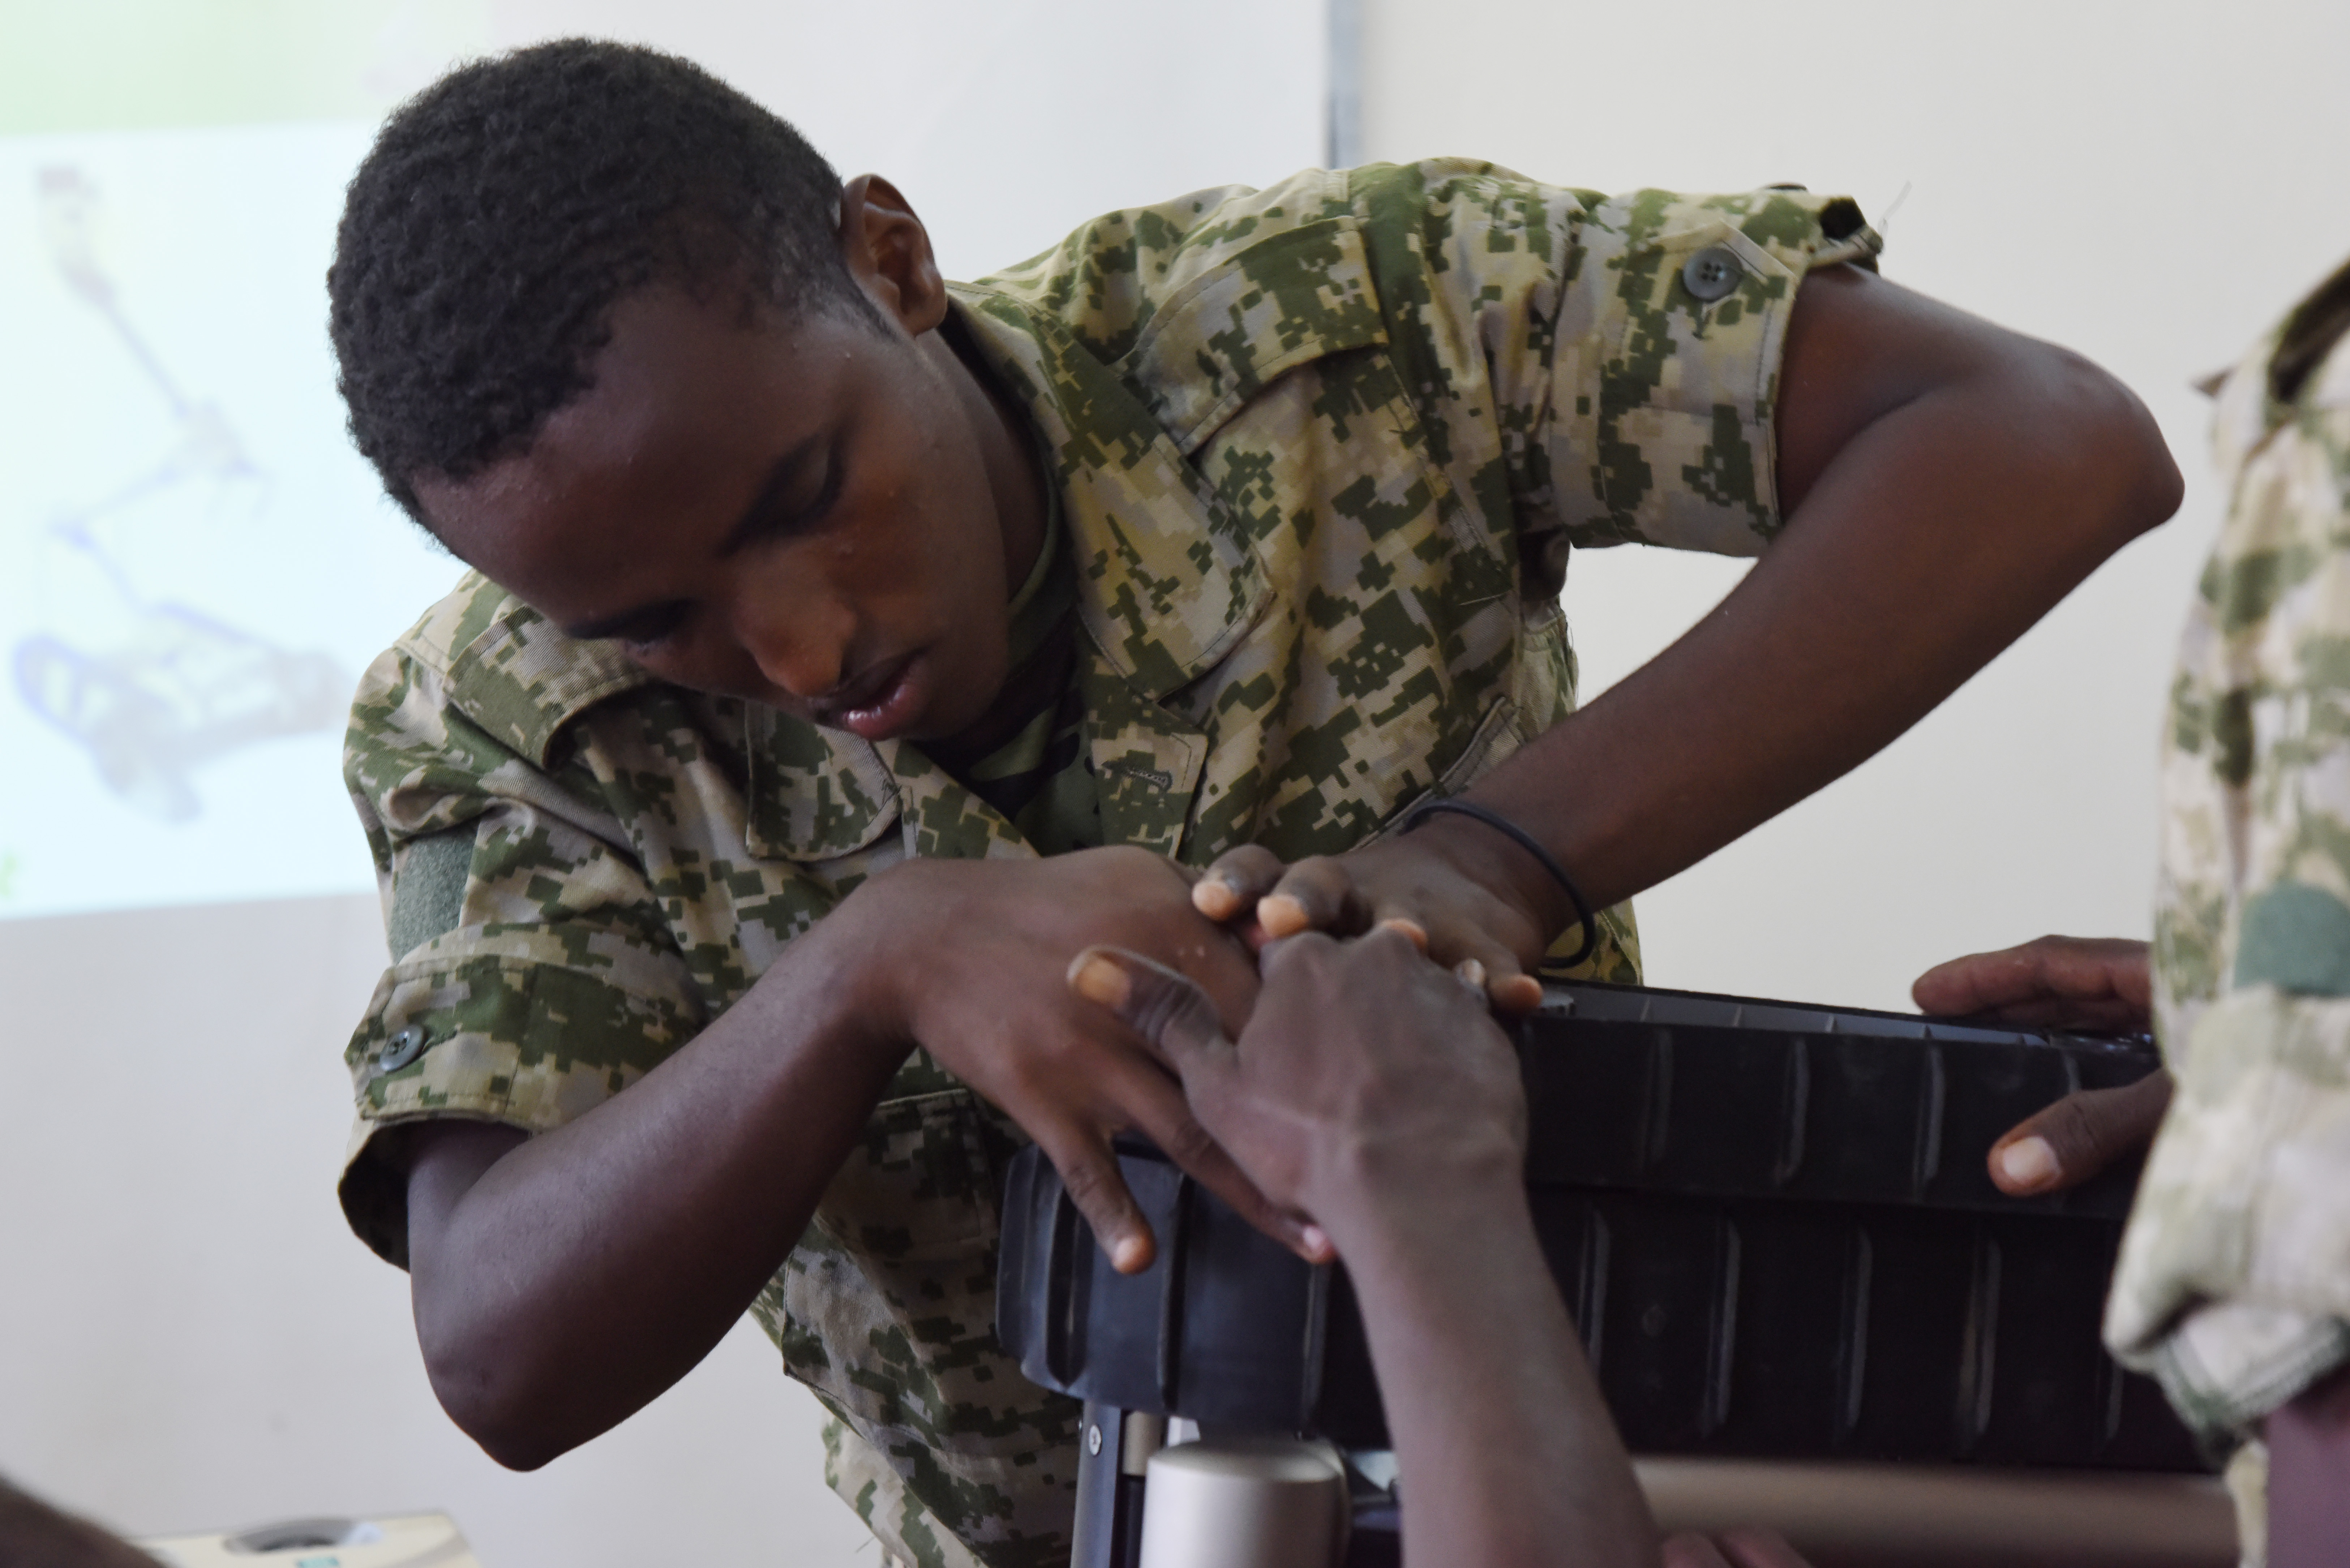 Members of the Djibouti Armed Forces (FAD) learn how set up the iRobot 510 Packbot during a class in Djibouti, Oct. 12, 2015. The service members also learned how to use the robot to search under vehicles for explosive devices. (U.S. Air Force photo by Staff Sgt. Maria Bowman)